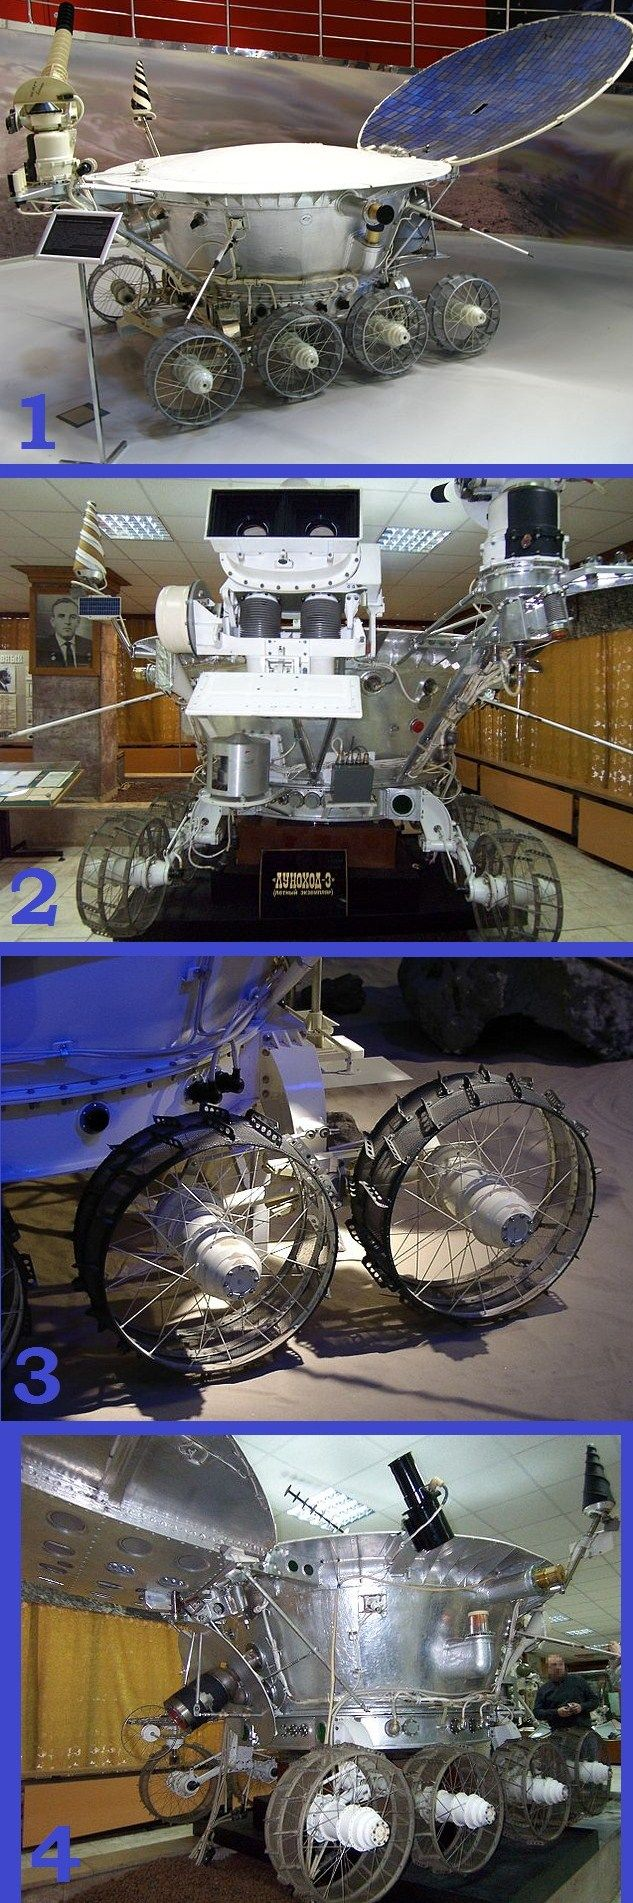 1. Lunokhod was a series of Russian robotic lunar rovers in 1969 – 1973. 2. Front view. 3. Detail of Lunokhod's wheels. 4. Side view. #Russia #space